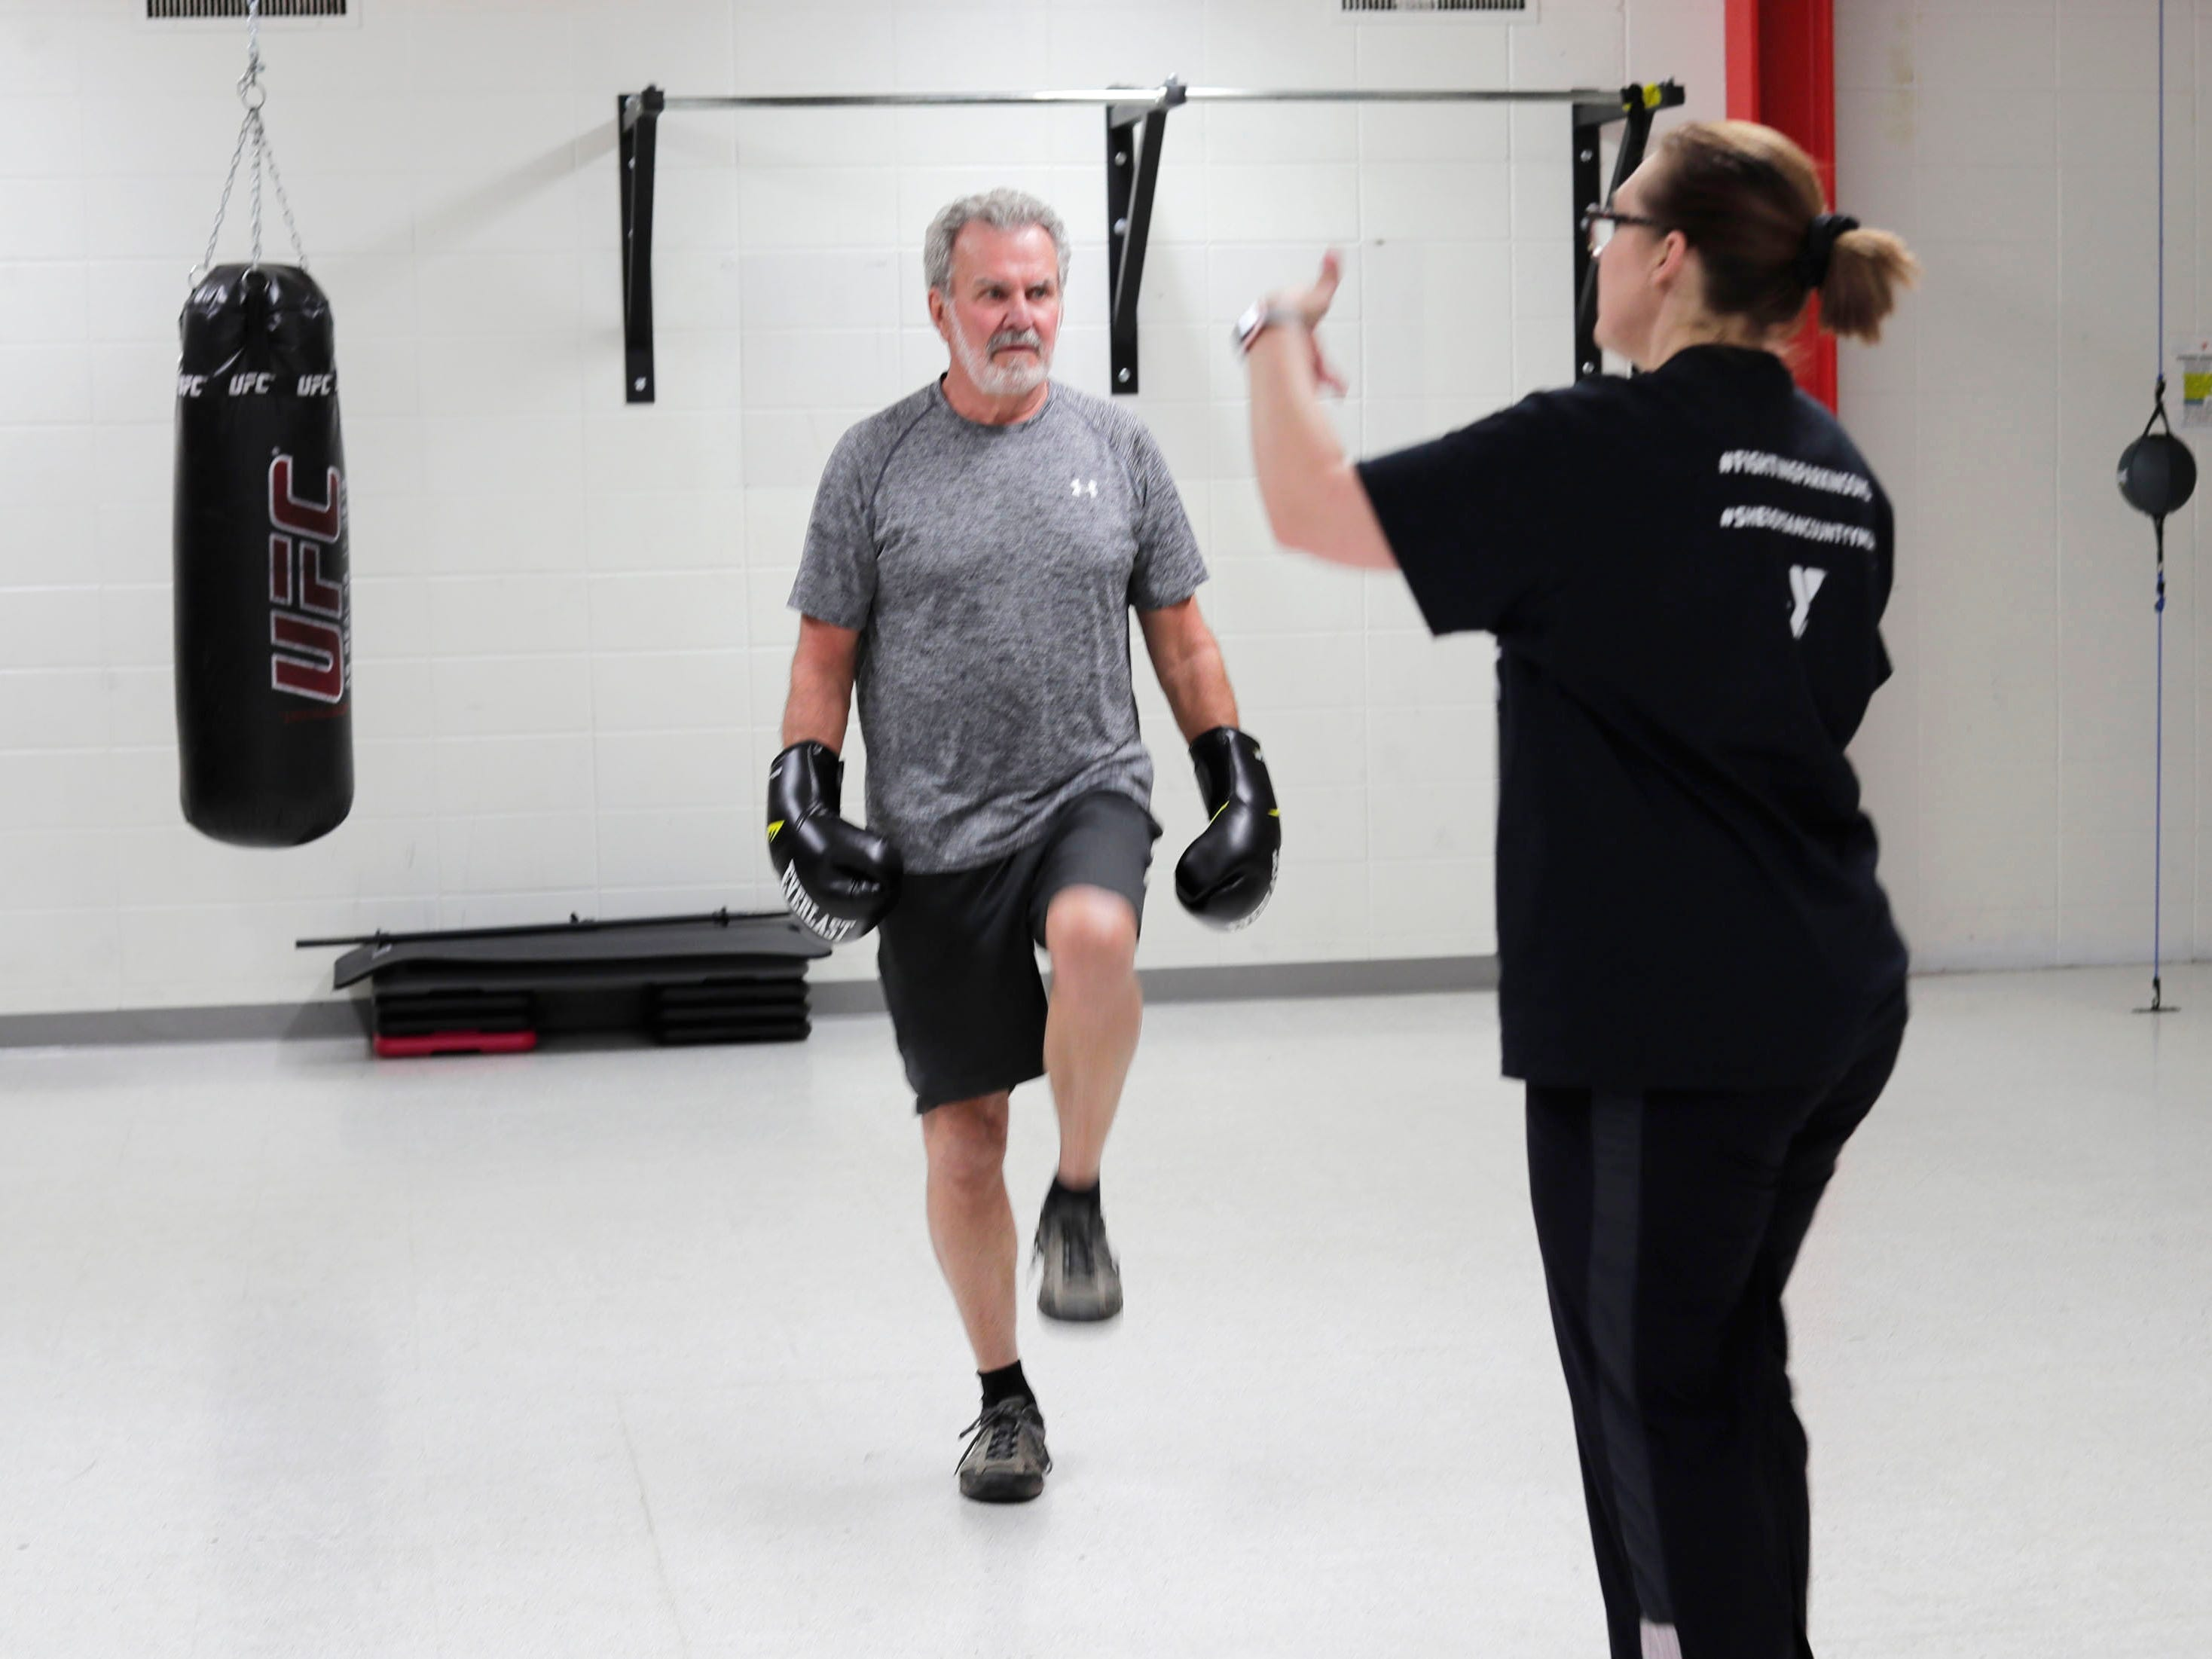 Larry Boll of Sheboygan, left, balances on one foot during the Fighting Parkinson's class at the YMCA while instructor Jana Adams gives him advice during the class, Thursday, March 21, 2019, in Sheboygan, Wis.